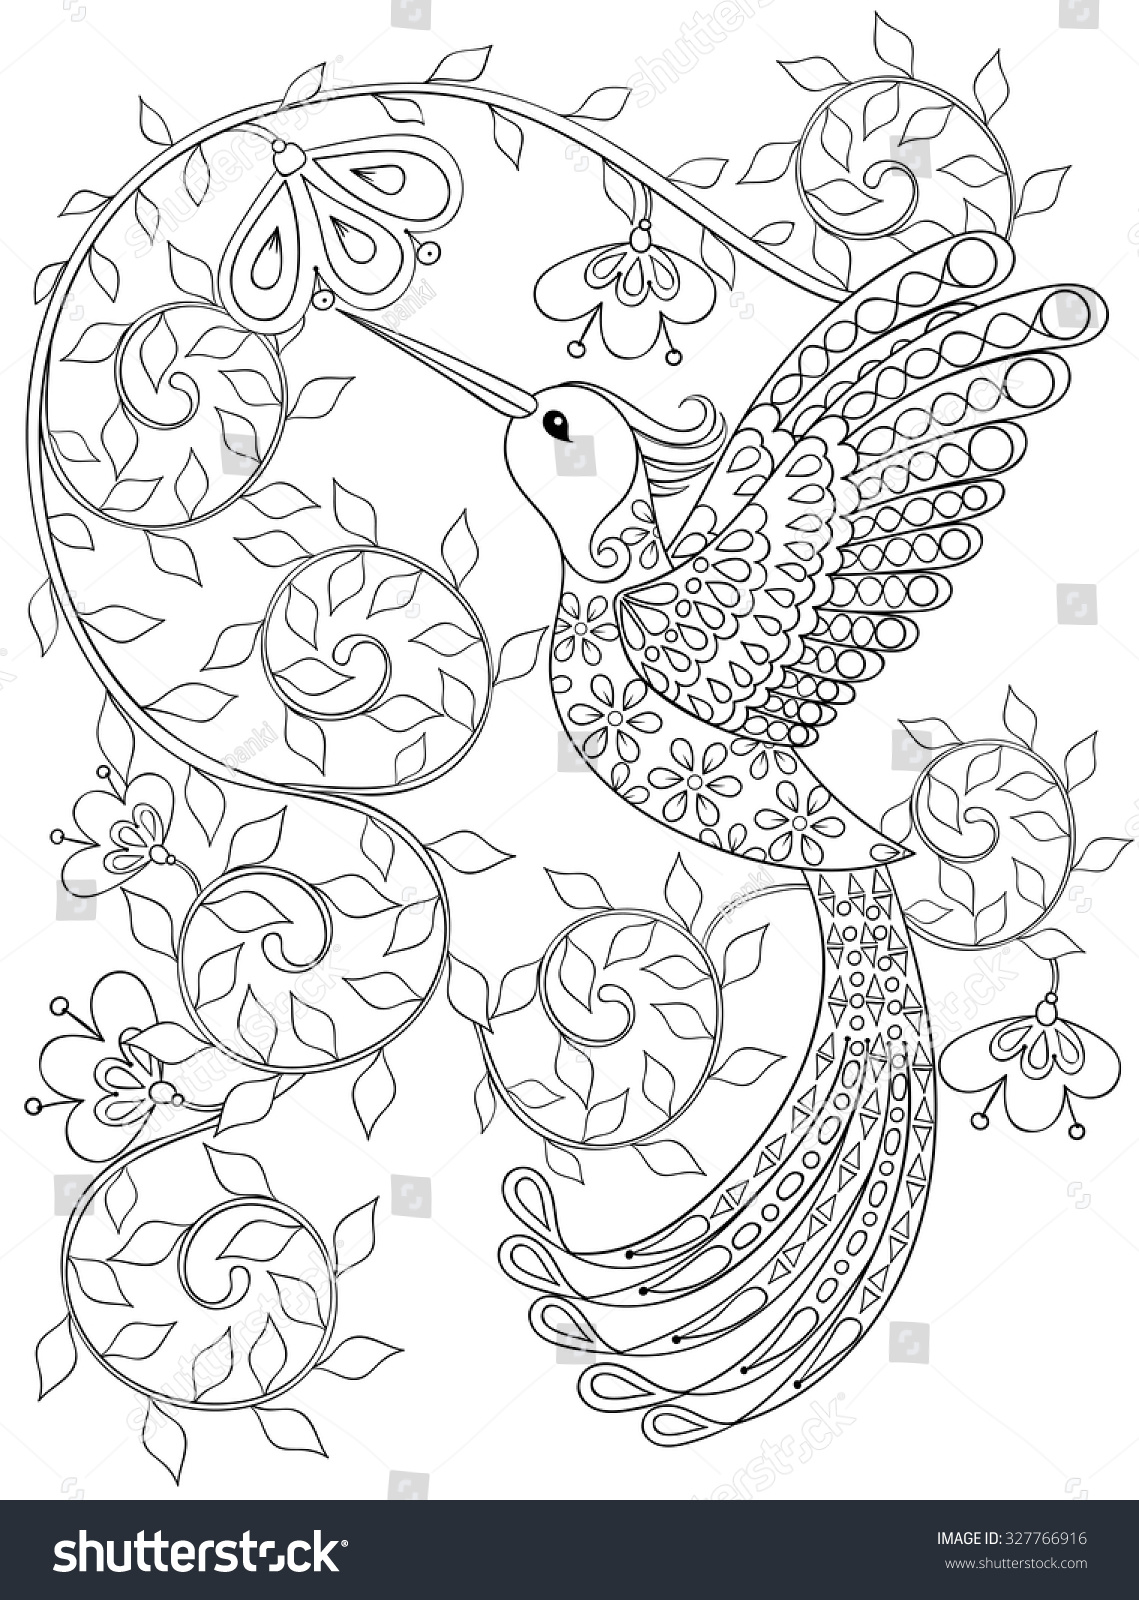 Royalty-free Coloring page with Hummingbird,… #327766916 Stock Photo ...